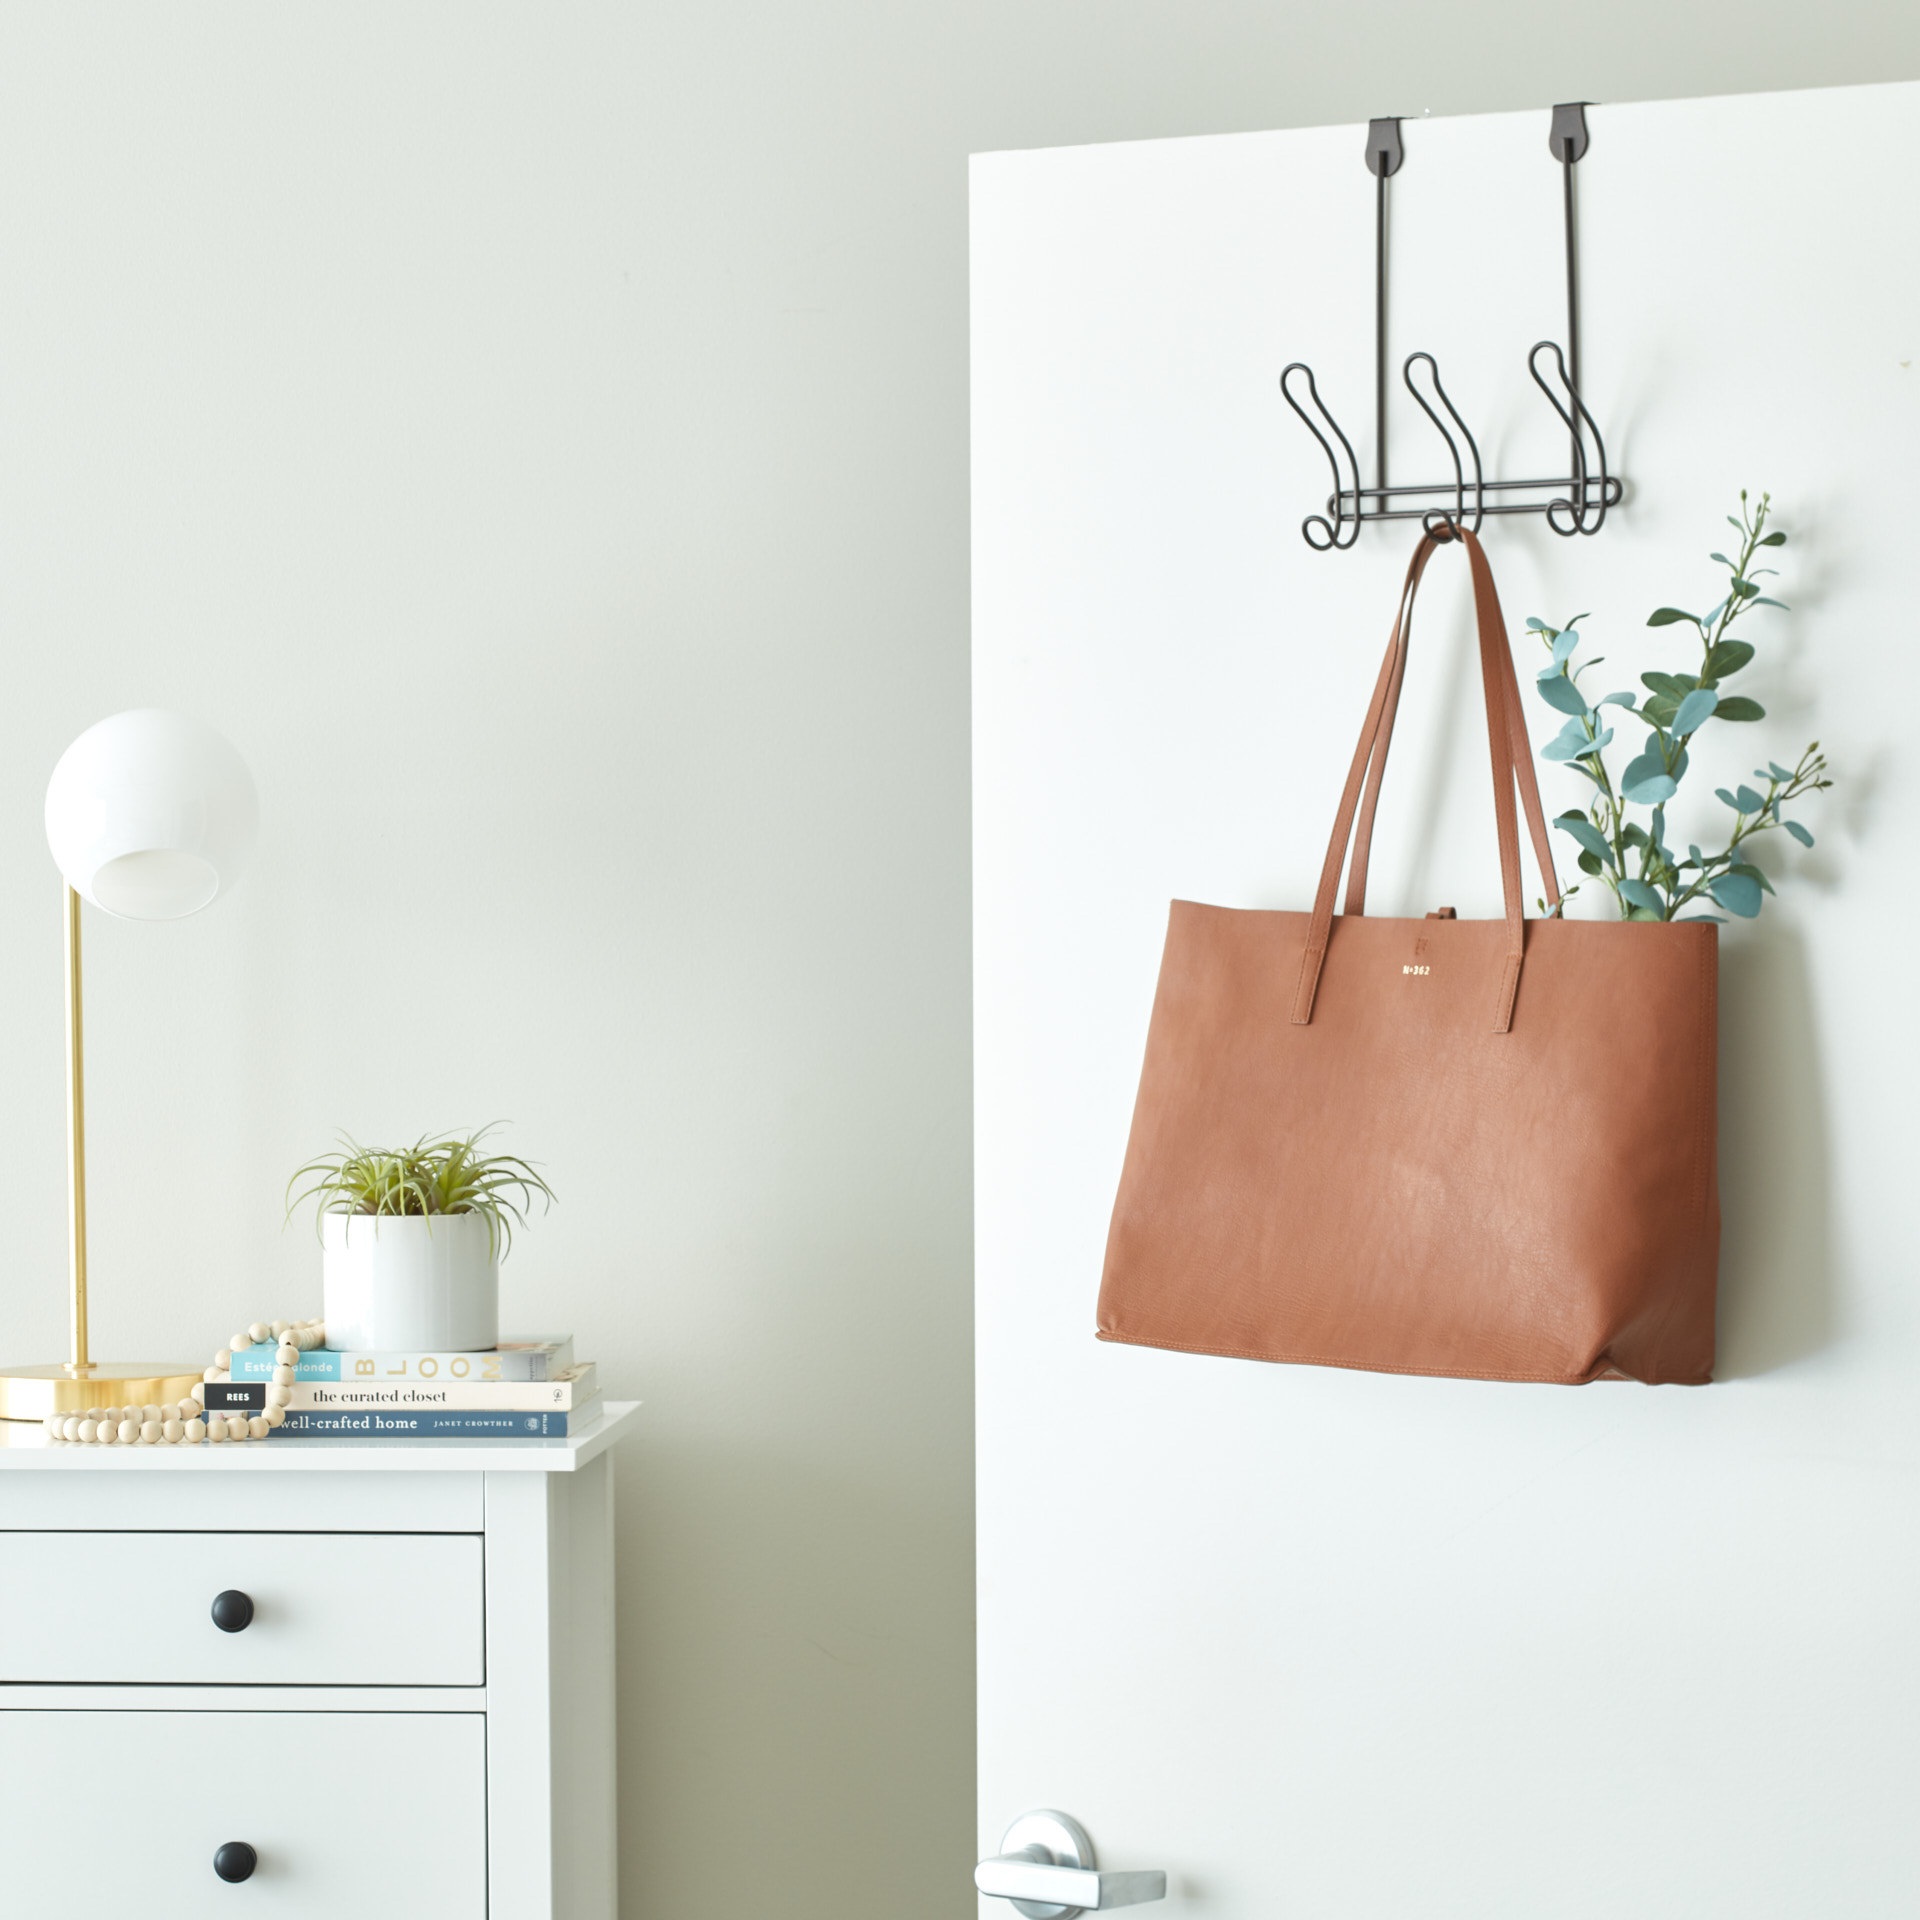 Over the door hooks with purse